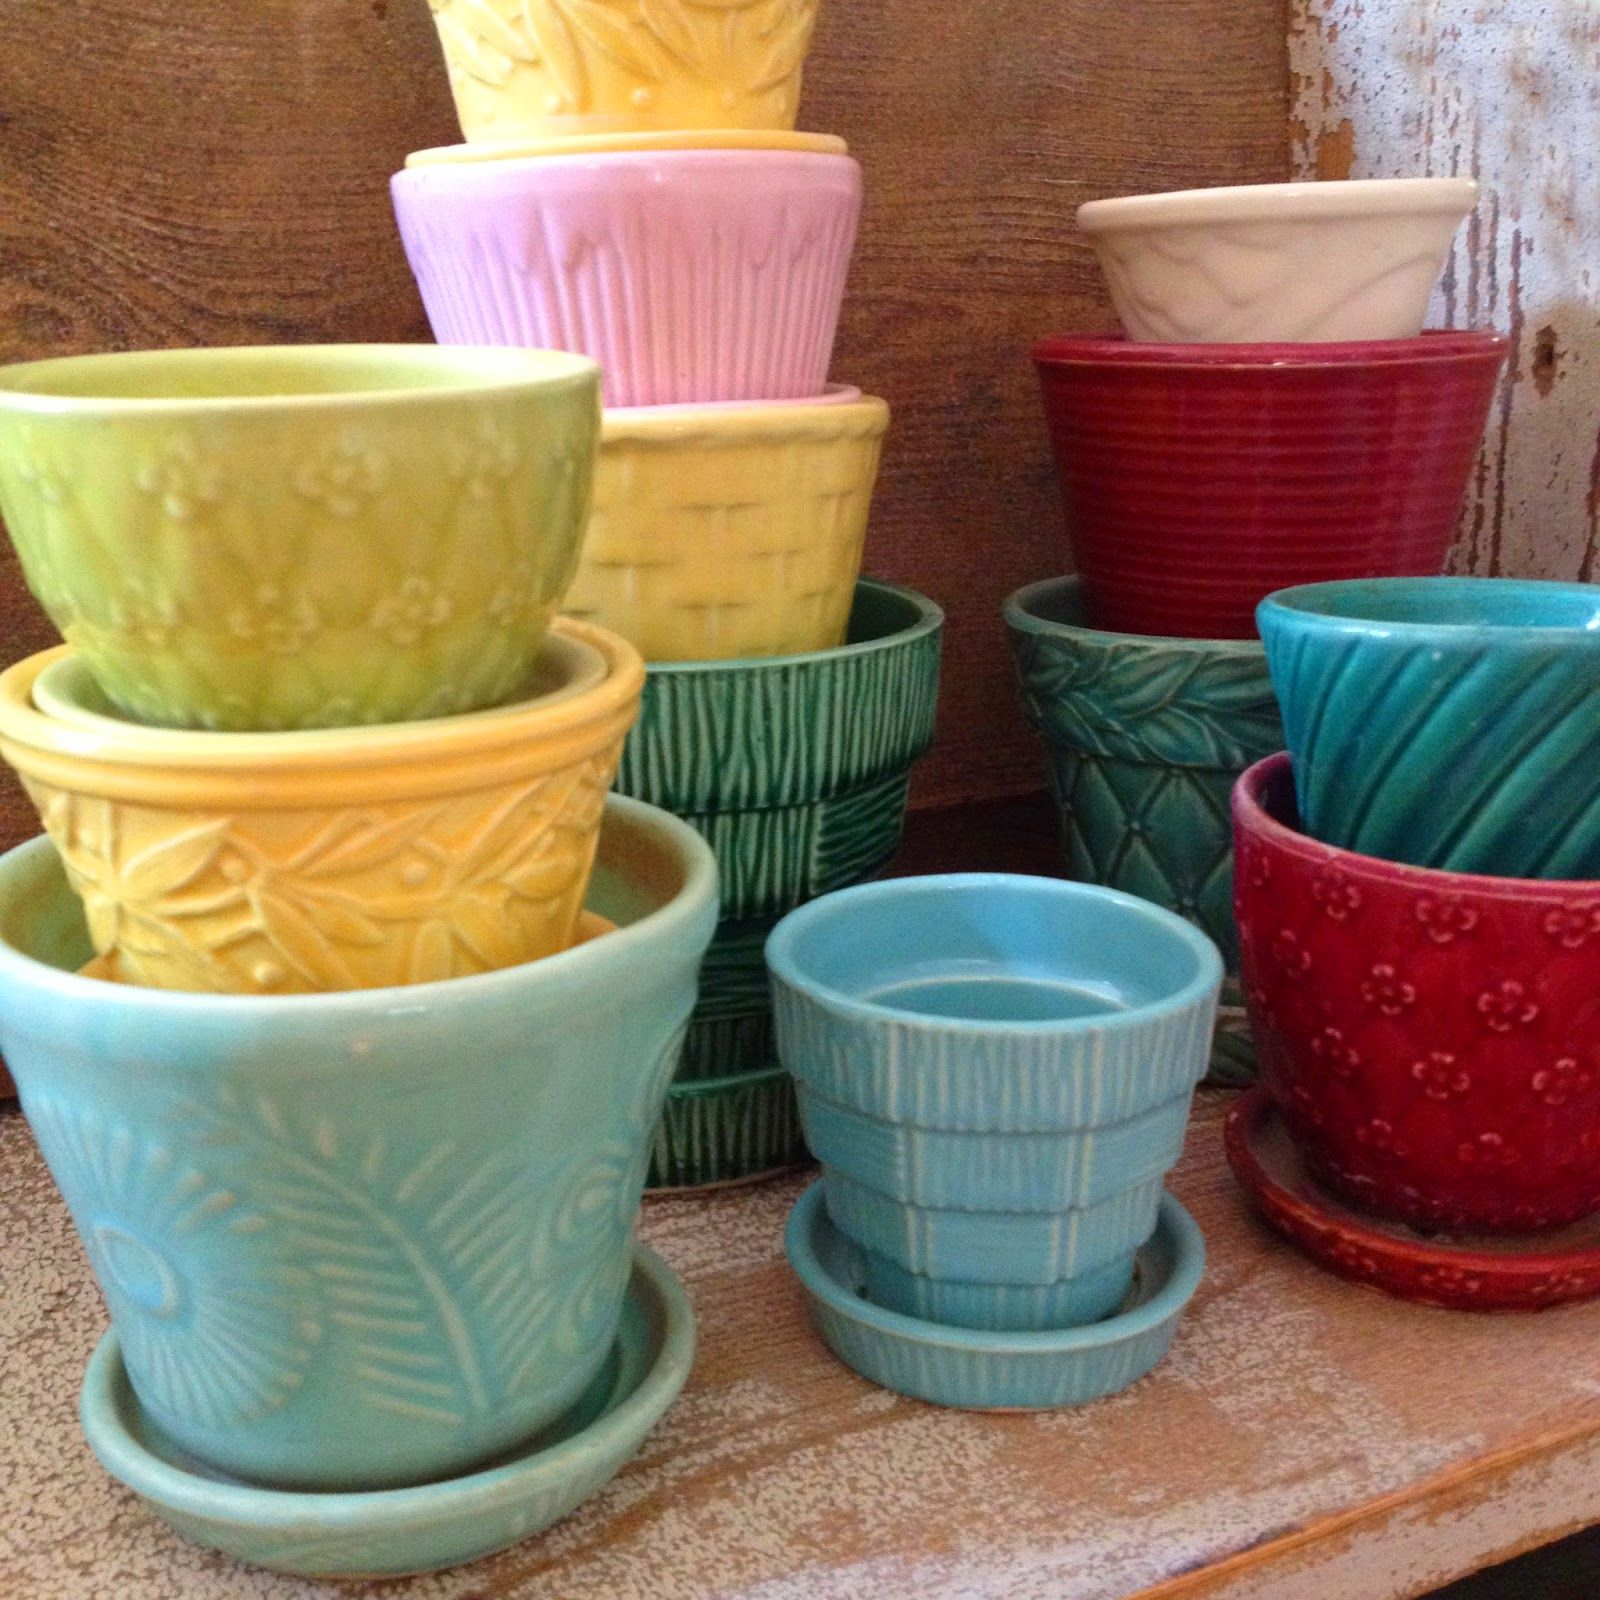 vintage mccoy pots are so decorative and versatile. can you imagine